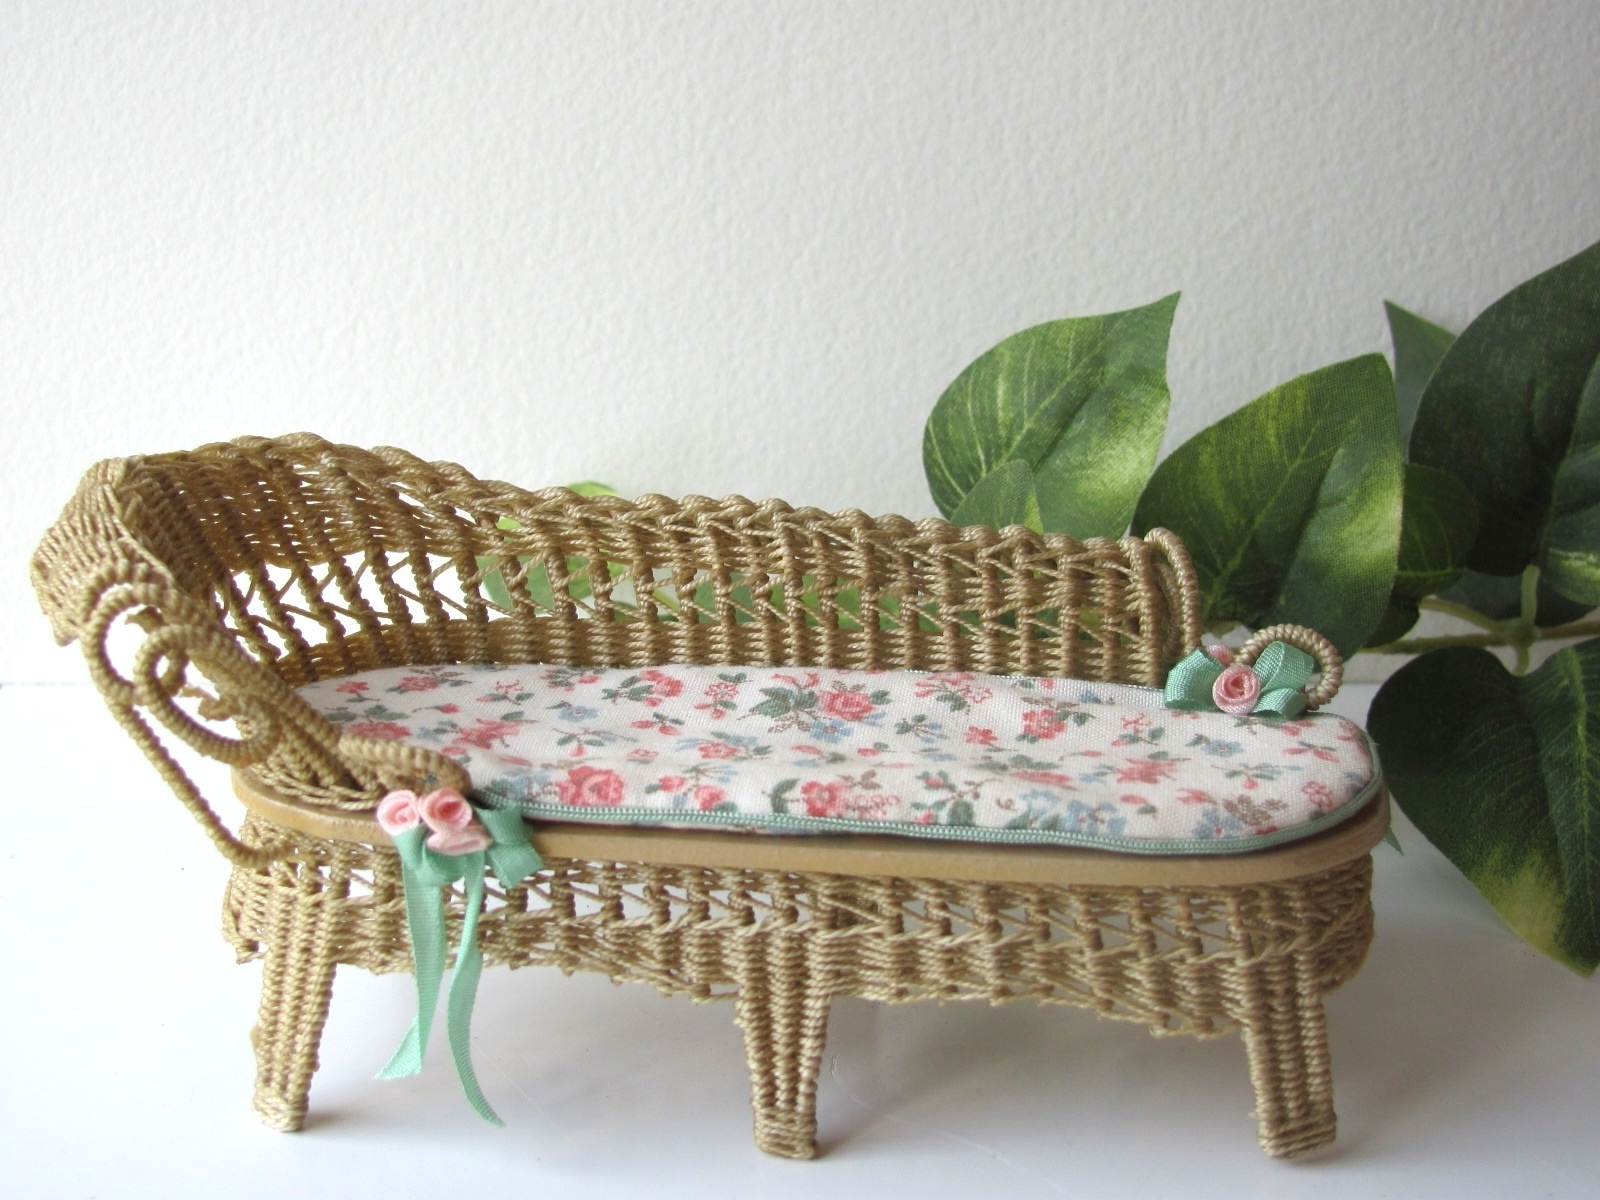 Best And Newest Country Cottage Chic Wicker Chaise Lounge 1/12 Miniature Dollhouse Pertaining To Wicker Chaise Lounges (View 4 of 15)